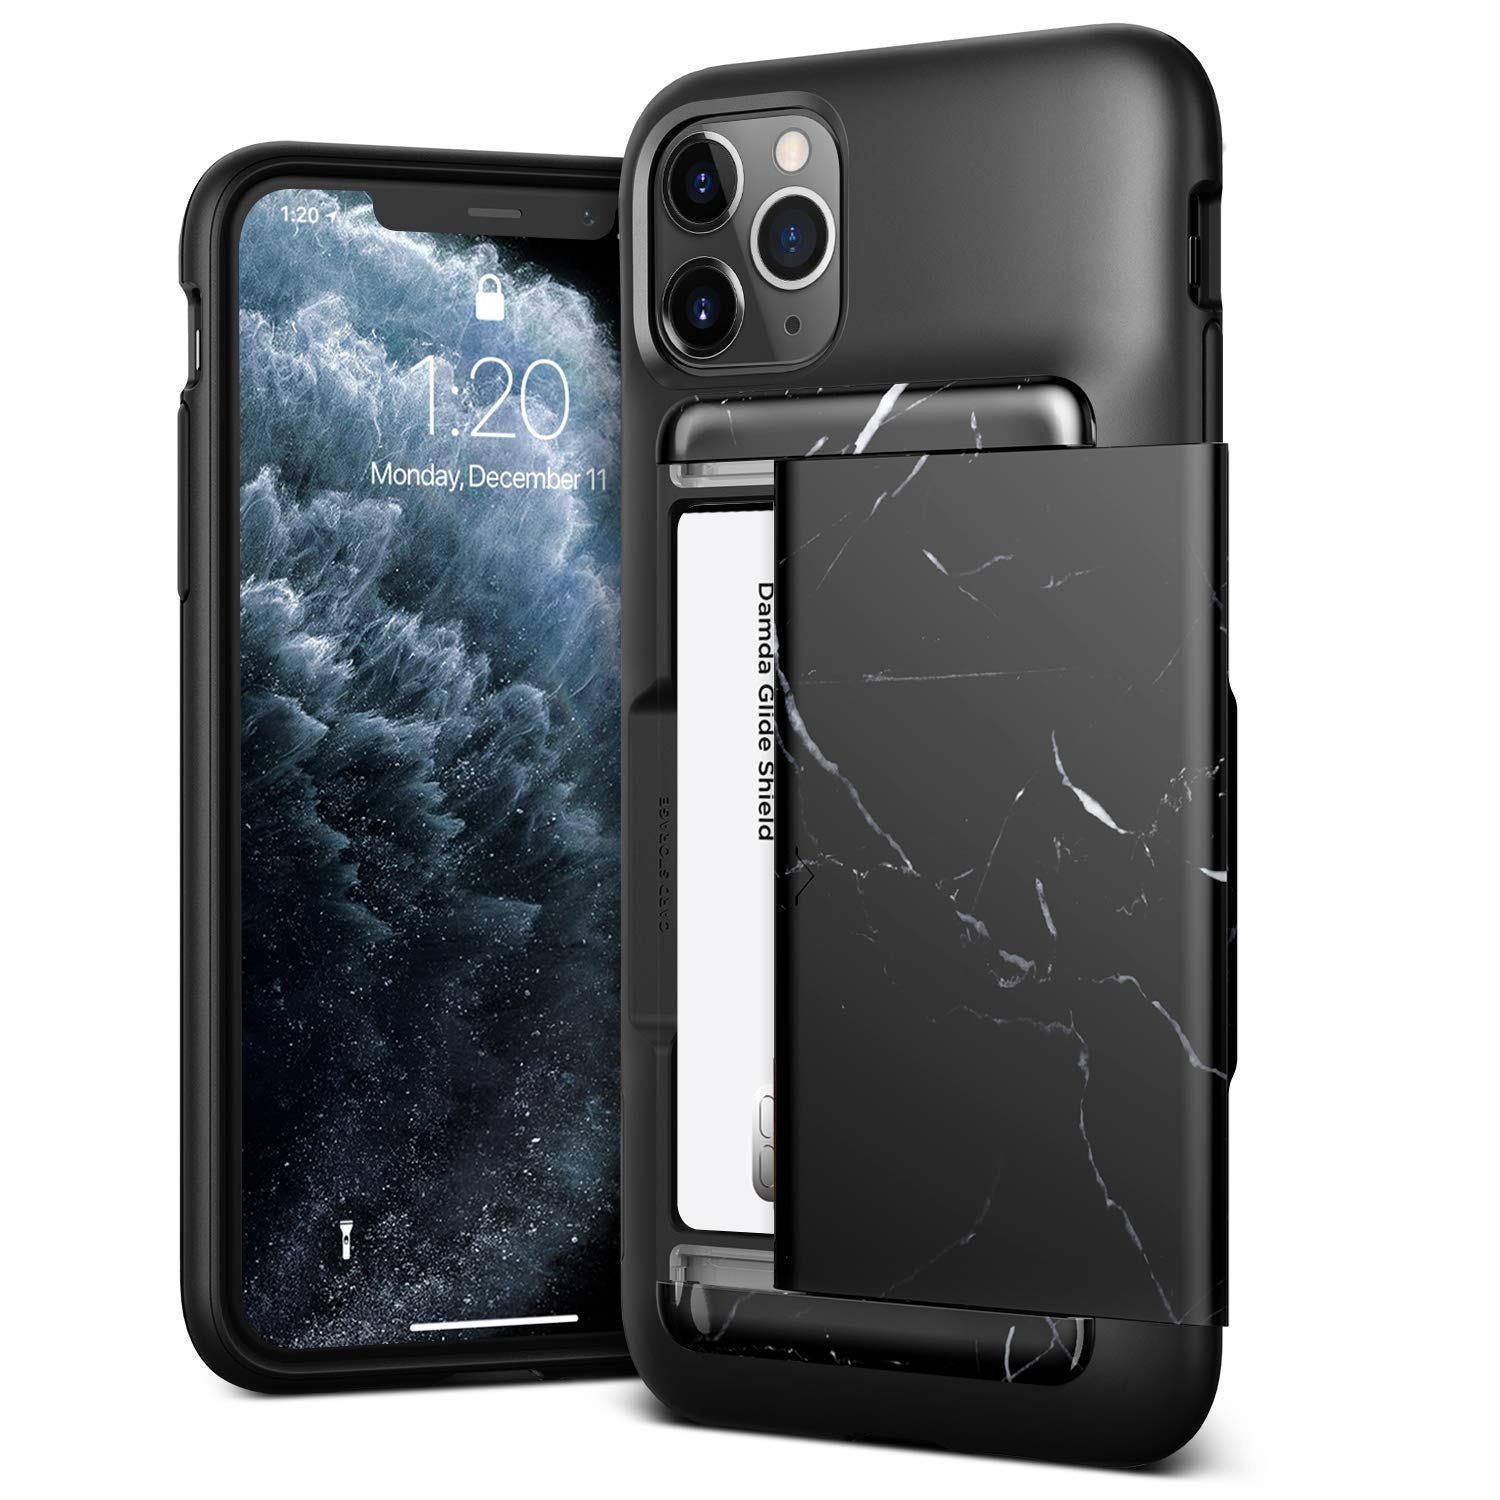 VRS DESIGN Damda Glide Shield Compatible for iPhone 11 Pro Max Case, with [2 Cards] Premium [Semi Auto] Wallet for iPhone 11 Pro Max 6.5 inch (2019) Black Marble